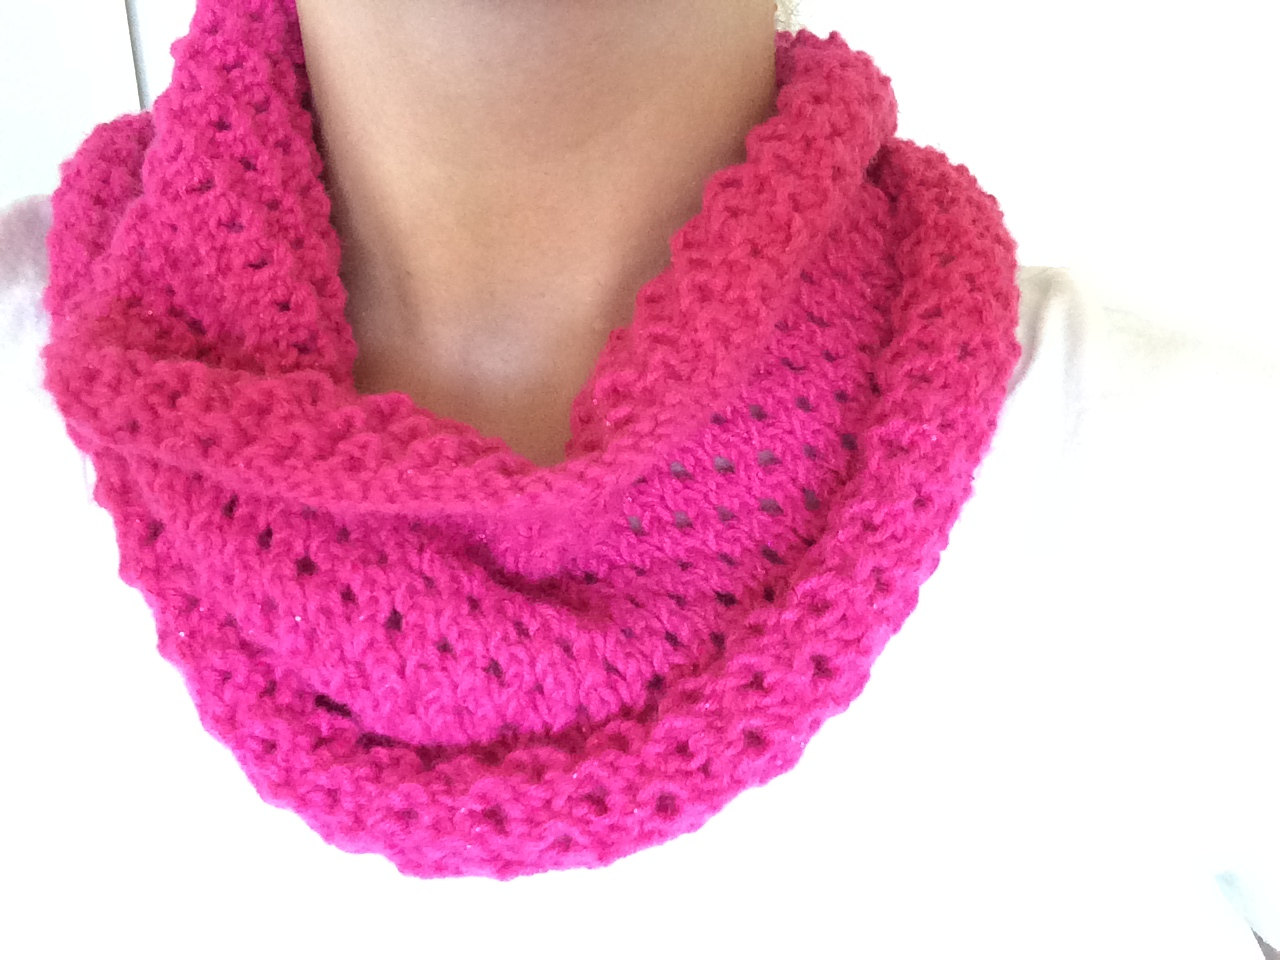 Slouchy Beret Knitting Pattern Free : SaraMarieCreations: FO - and Free Pattern! Eyelet Cowl in Hot Pink Sparkle